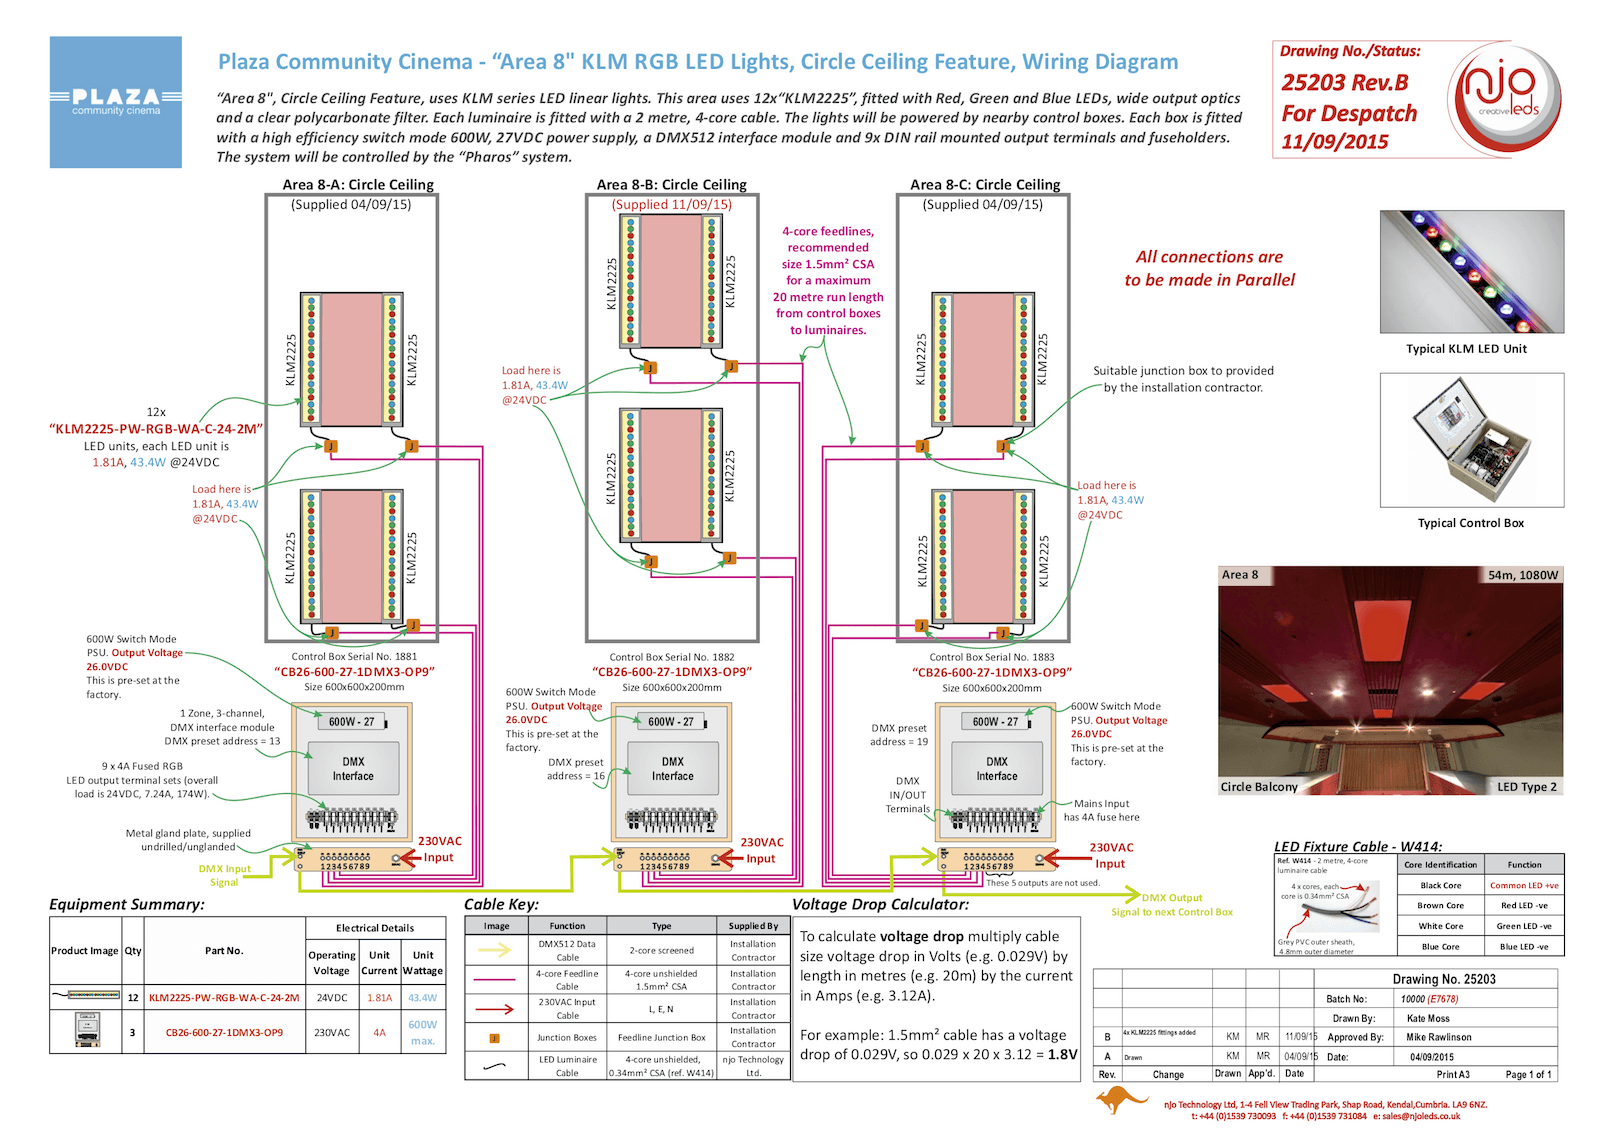 njo Plaza Community Cinema Typical Wiring Diagram